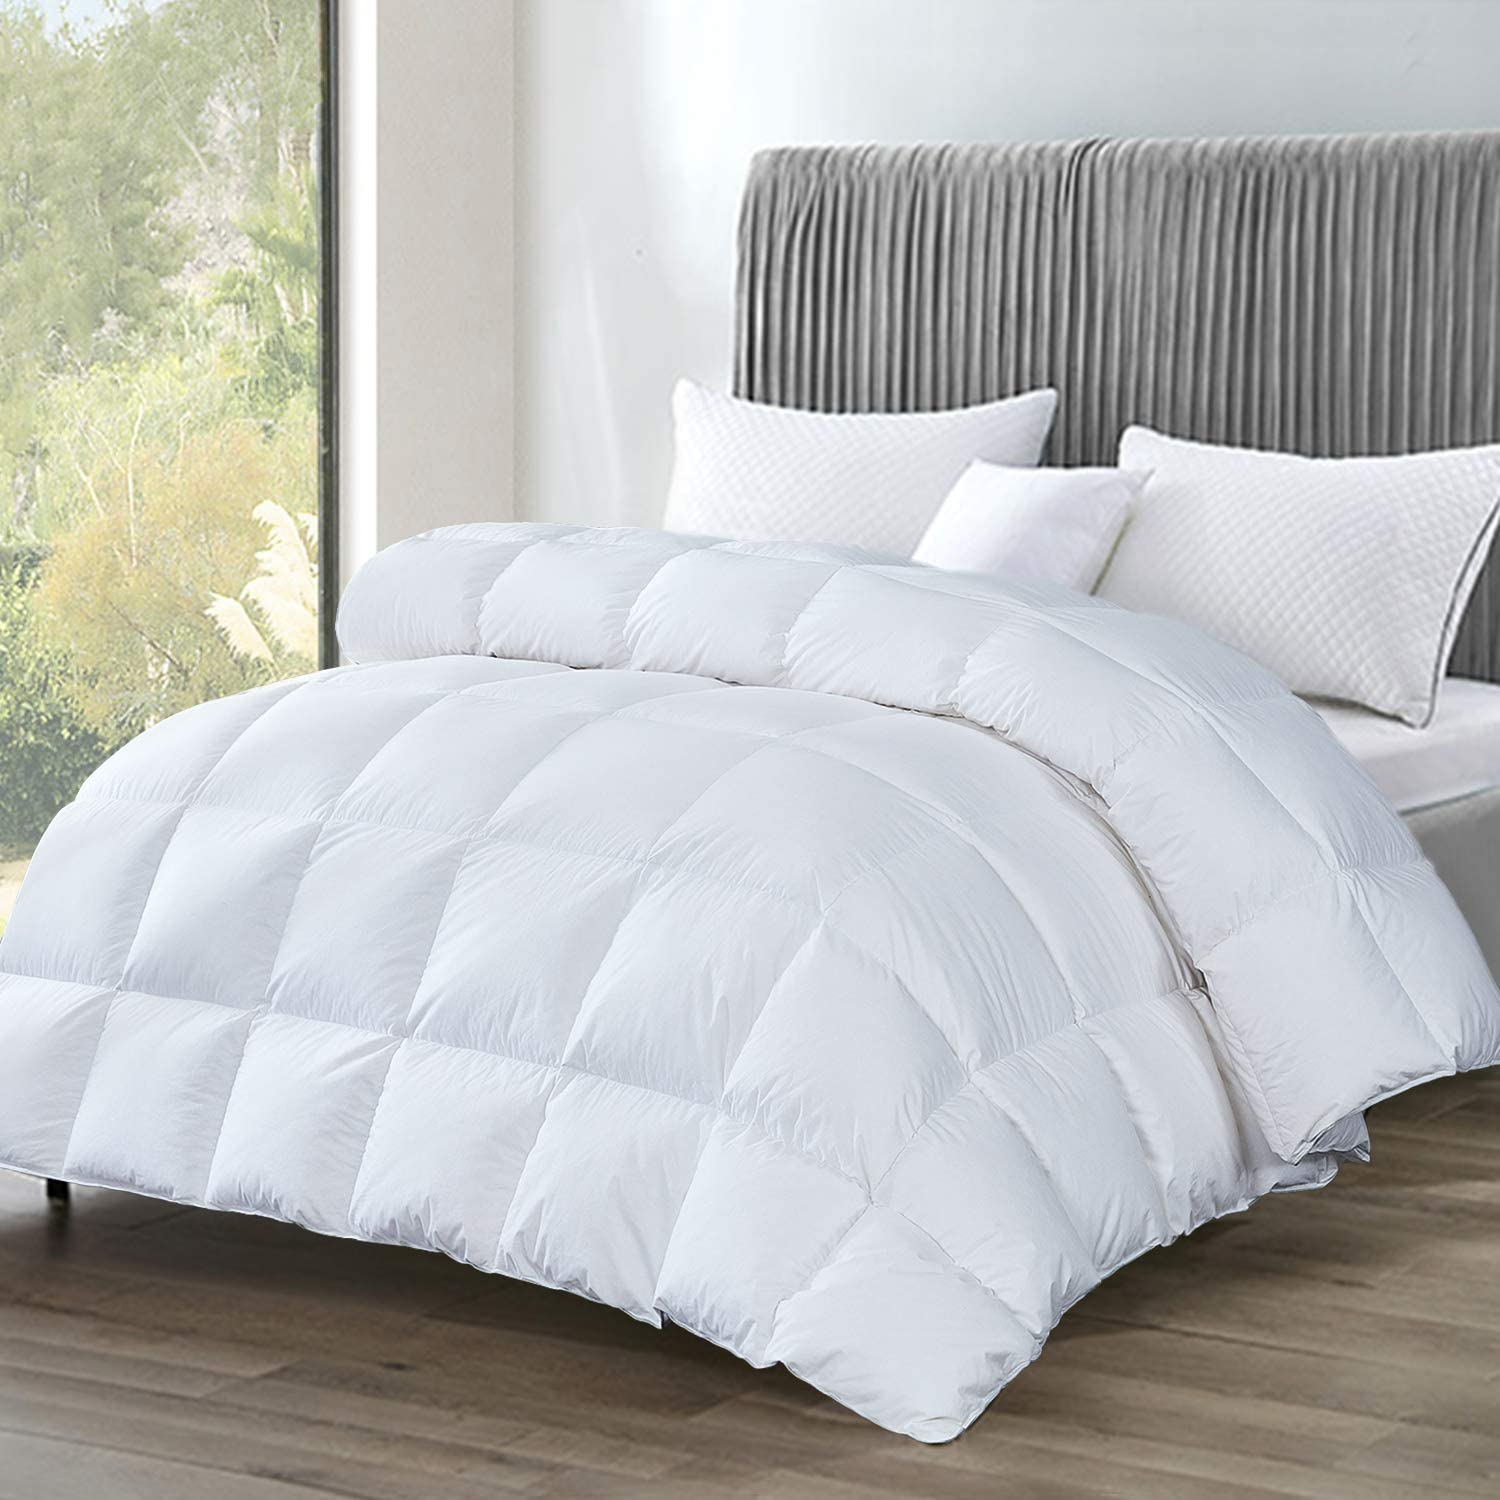 Re Bedding Luxurious Goose Down Comforter All Season Duvet Insert 100 Cotton Cover 750 Fill Power 1000 Thread Count Hypoallergenic Down Proof With 8 Tabs Twin White Medium Weight Amazon Co Uk Kitchen Home